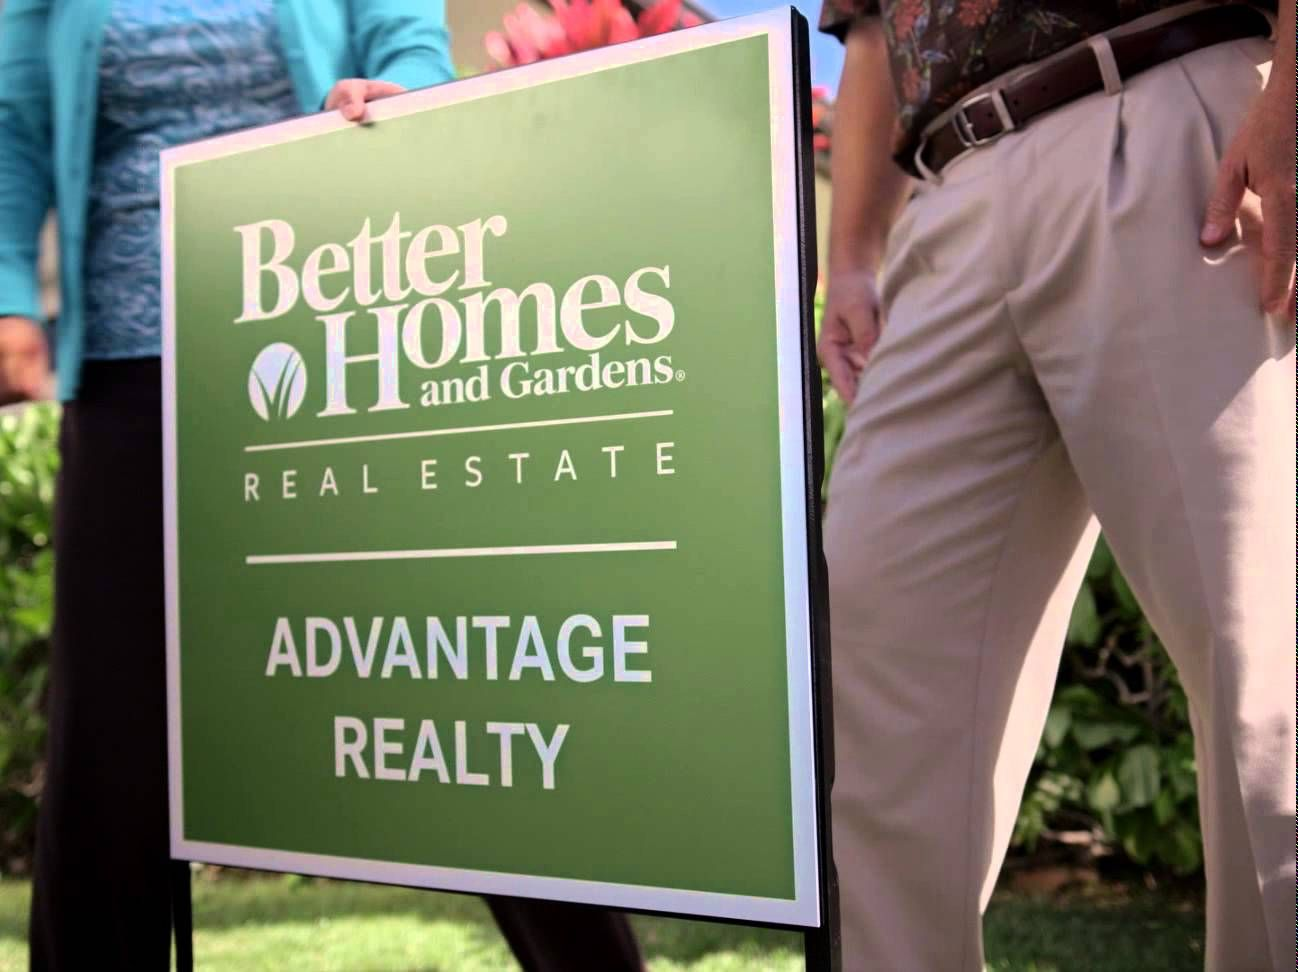 Better Homes and Gardens Real Estate Advantage Realty Announcement Commercial